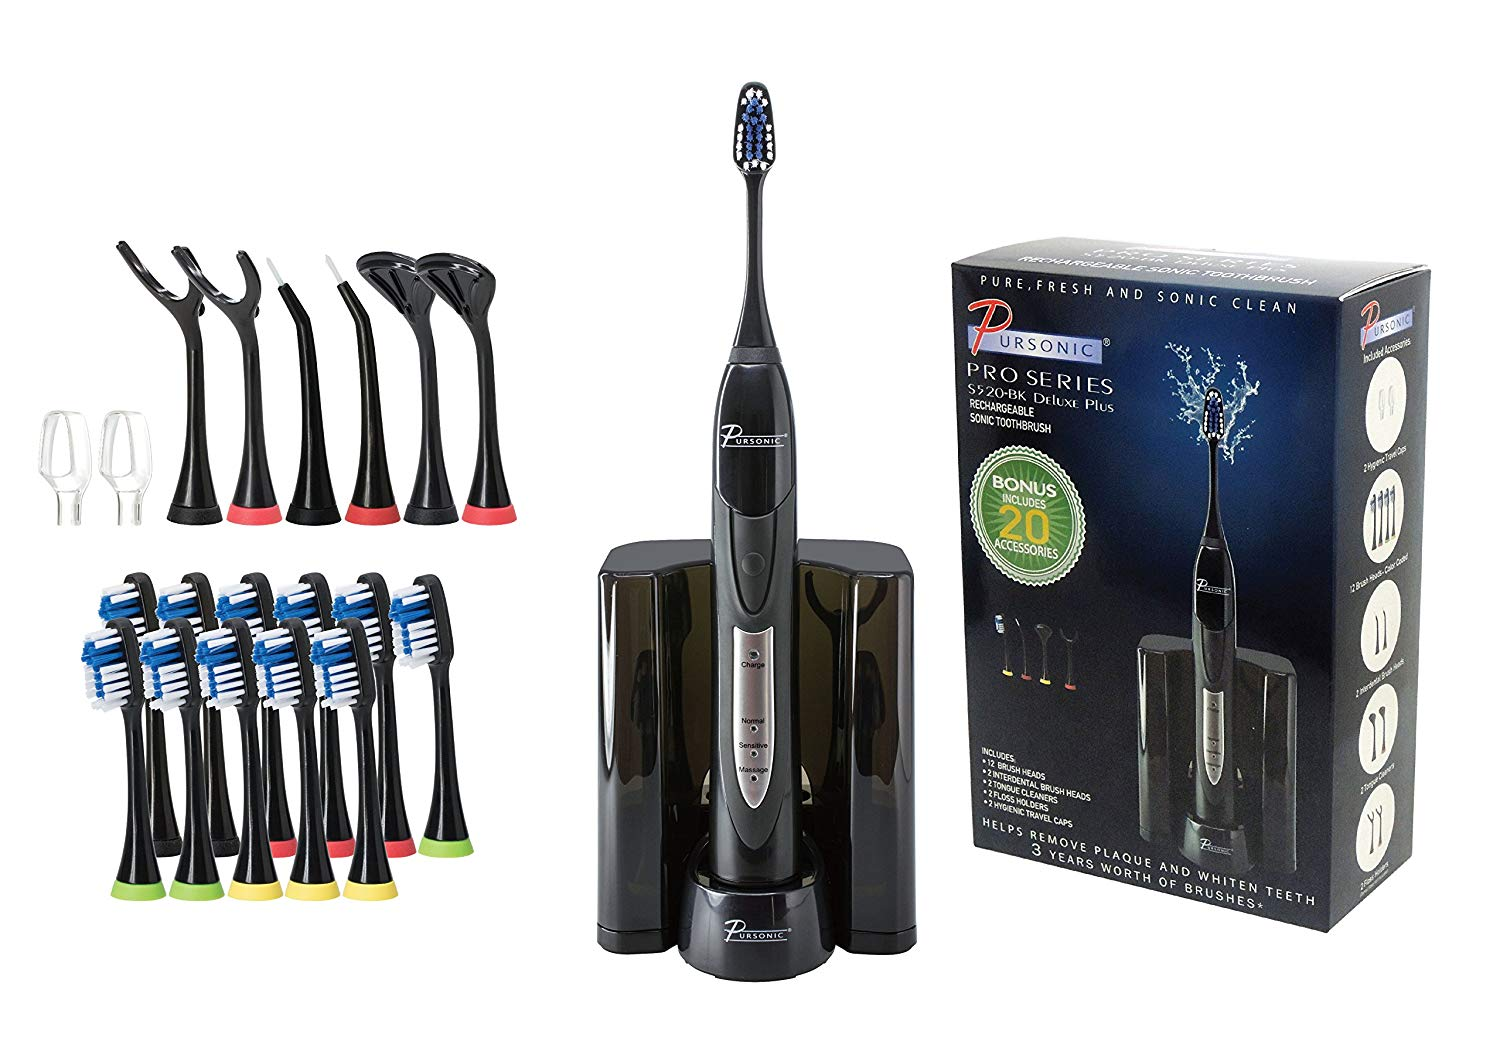 Best Electric Toothbrushes for Whiter Teeth